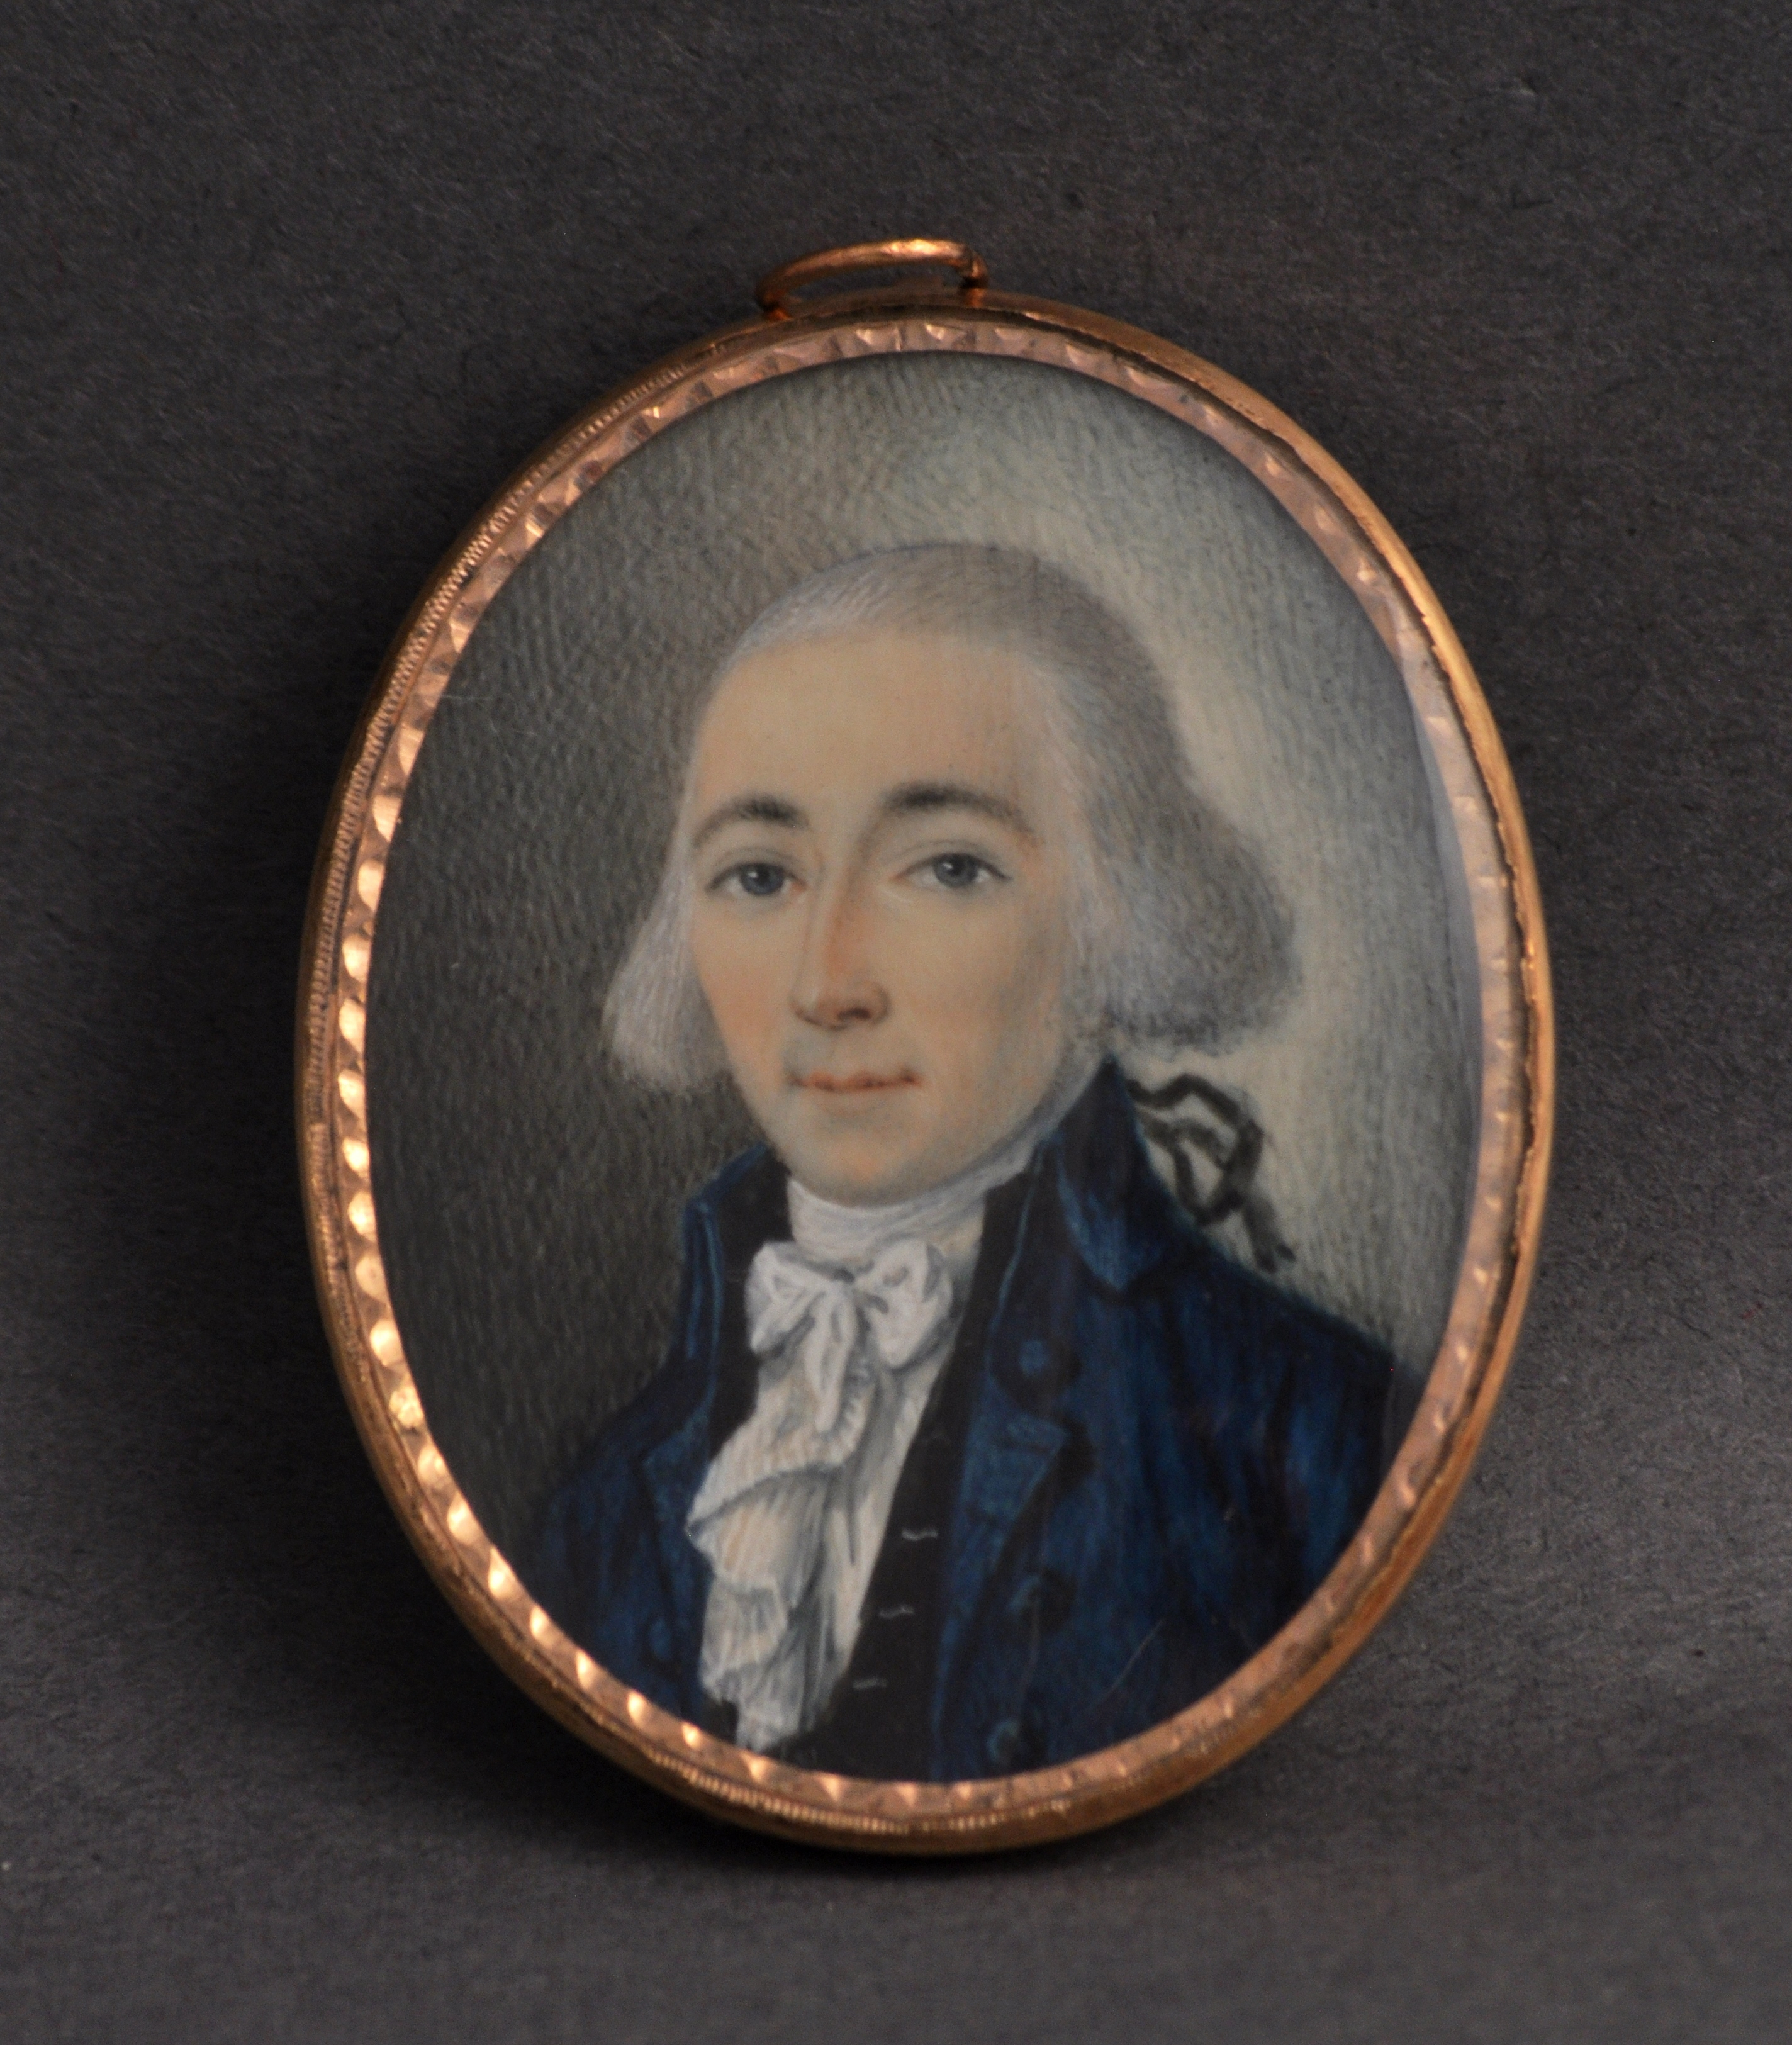 Charles Drayton (1743-1820). Artist unknown. ca. 1760. Watercolor on ivory, supported by burnished bezel case with hanging loop and mounted brooch pin. Drayton Hall Museum Collection, National Trust for Historic Preservation. Gift of Mr. Charles H. Drayton, III. Photograph courtesy of Mr. Russell Buskirk.